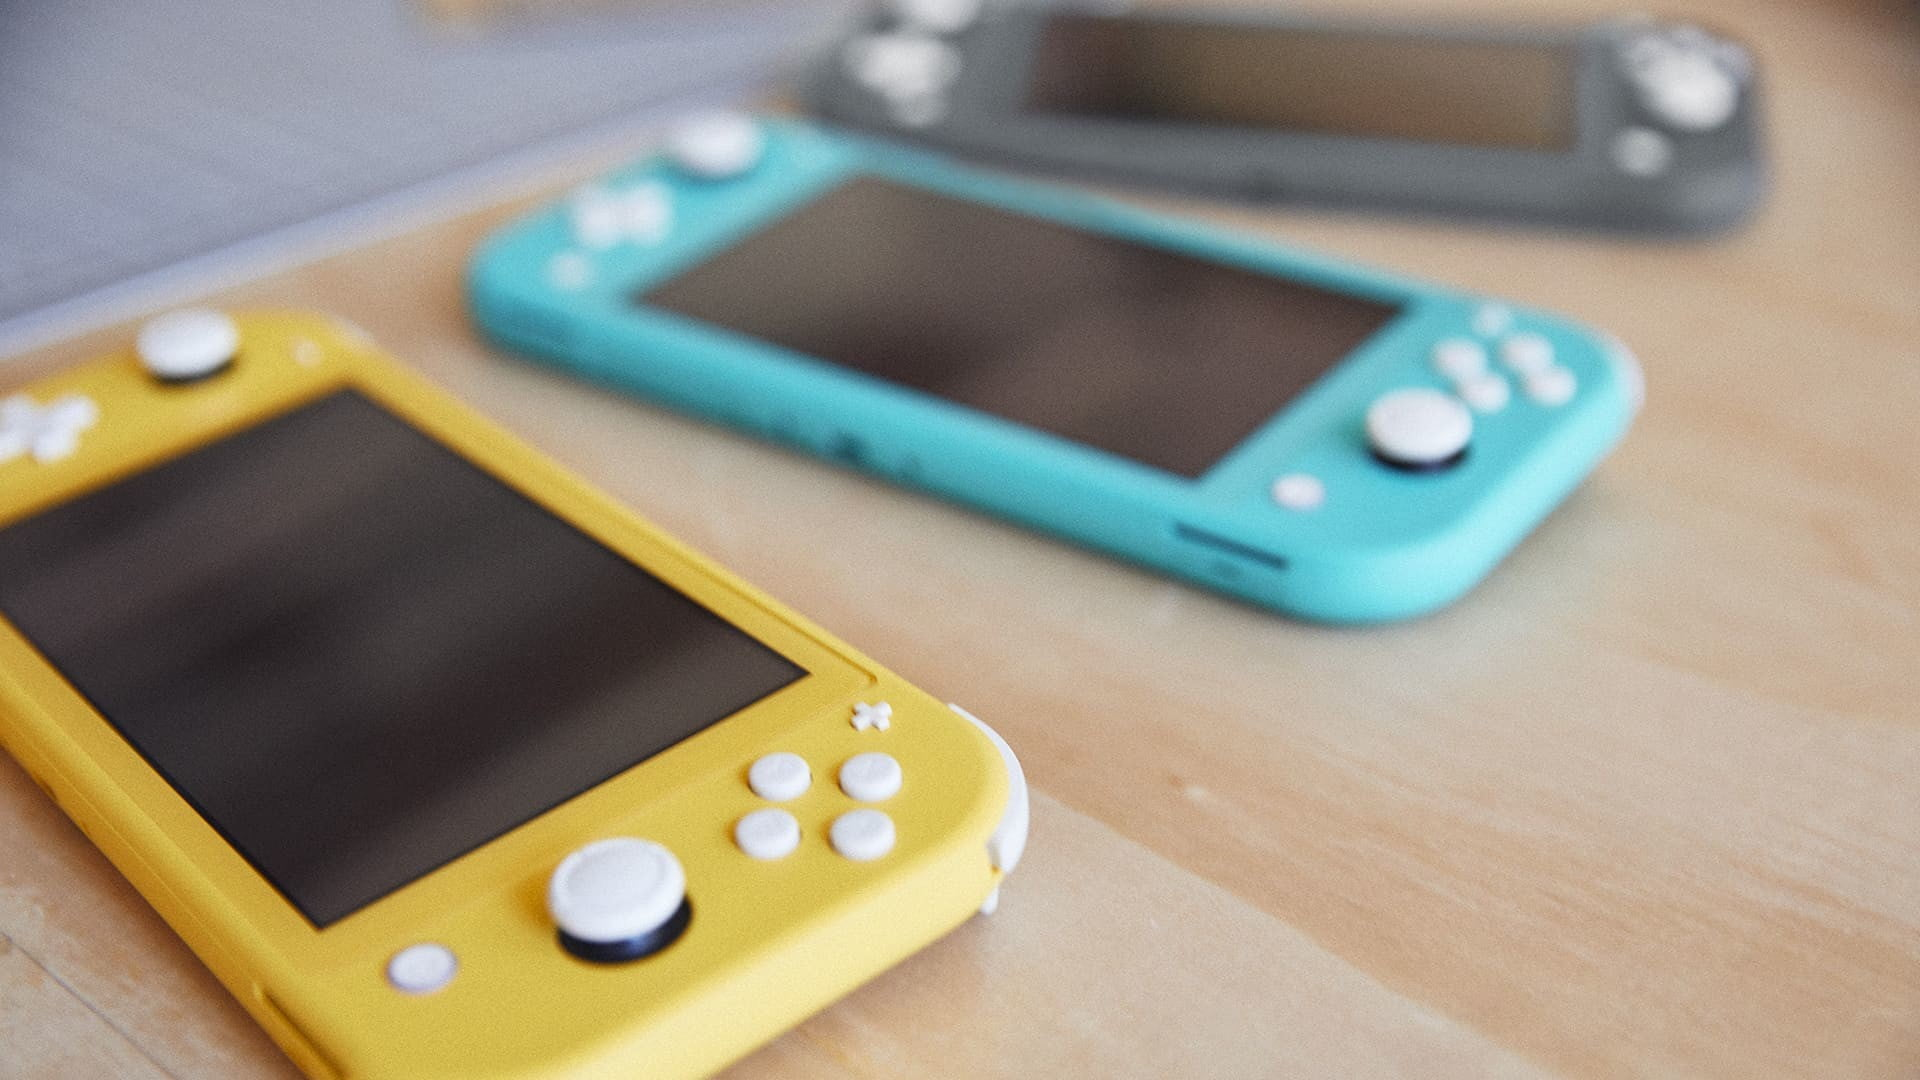 Nintendo Switch Lite | Design, Specs, Price, Editions, and Release